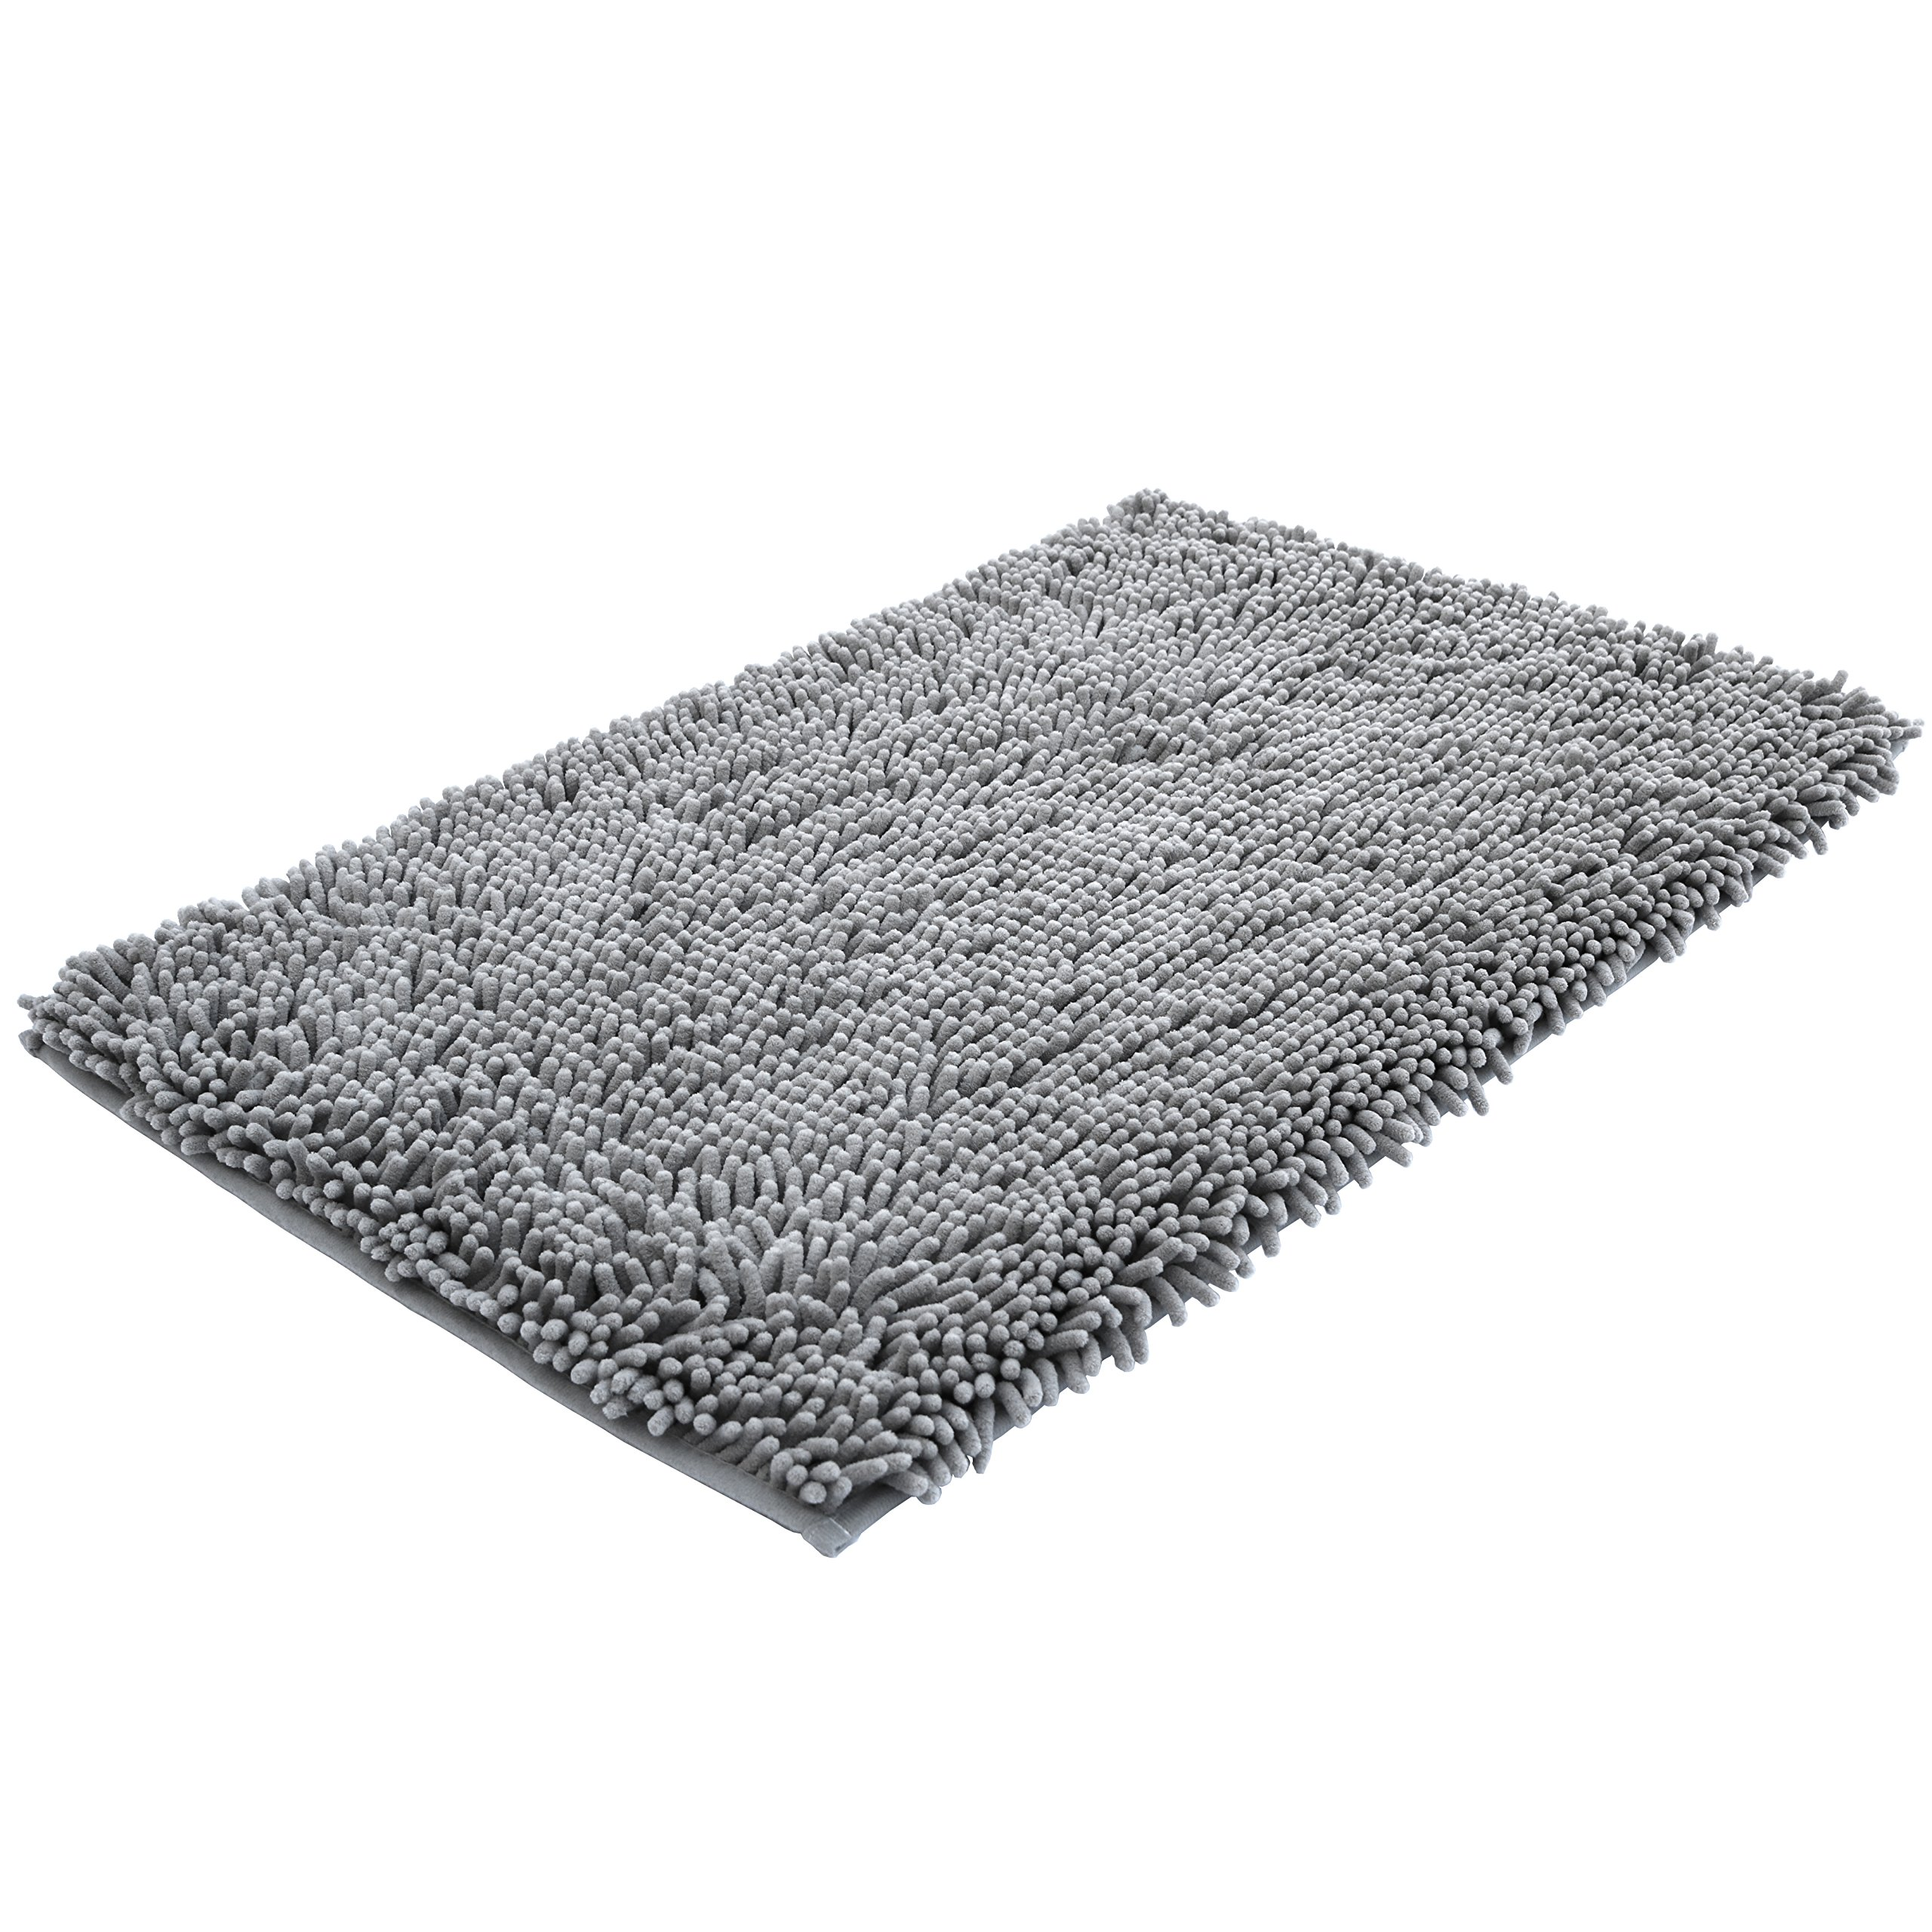 NTTR Super Soft Bath Mat Microfiber Shag Bathroom Rugs Non Slip Absorbent Fast Drying Bathroom Carpet Shower Rug by (Gray 20'' x 32'')